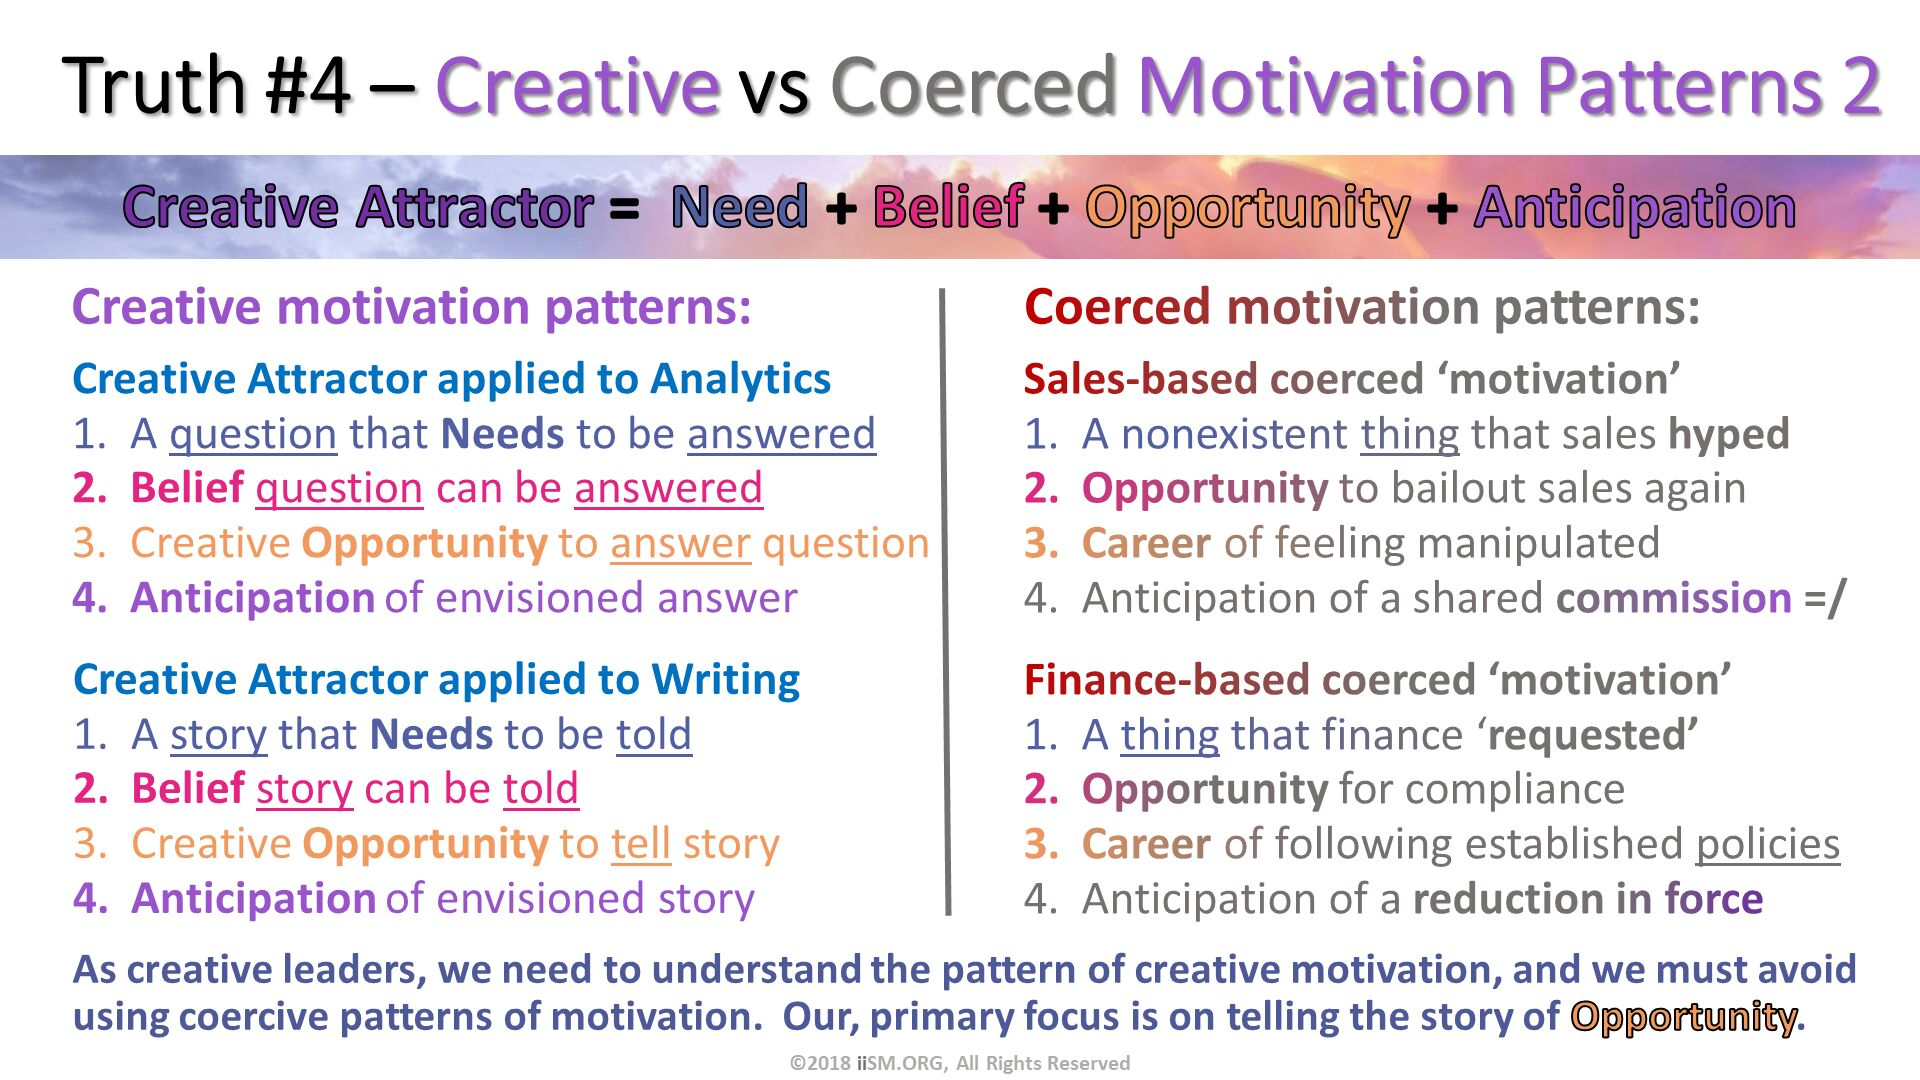 Truth #4 – Creative vs Coerced Motivation Patterns 2. Sales-based coerced 'motivation' A nonexistent thing that sales hyped Opportunity to bailout sales again  Career of feeling manipulated Anticipation of a shared commission =/. Finance-based coerced 'motivation' A thing that finance 'requested' Opportunity for compliance Career of following established policies Anticipation of a reduction in force. Creative motivation patterns:. ©2018 iiSM.ORG, All Rights Reserved. Coerced motivation patterns:. Creative Attractor applied to Analytics A question that Needs to be answered Belief question can be answered Creative Opportunity to answer question Anticipation of envisioned answer. Creative Attractor applied to Writing A story that Needs to be told Belief story can be told Creative Opportunity to tell story Anticipation of envisioned story. As creative leaders, we need to understand the pattern of creative motivation, and we must avoid using coercive patterns of motivation.  Our, primary focus is on telling the story of Opportunity.